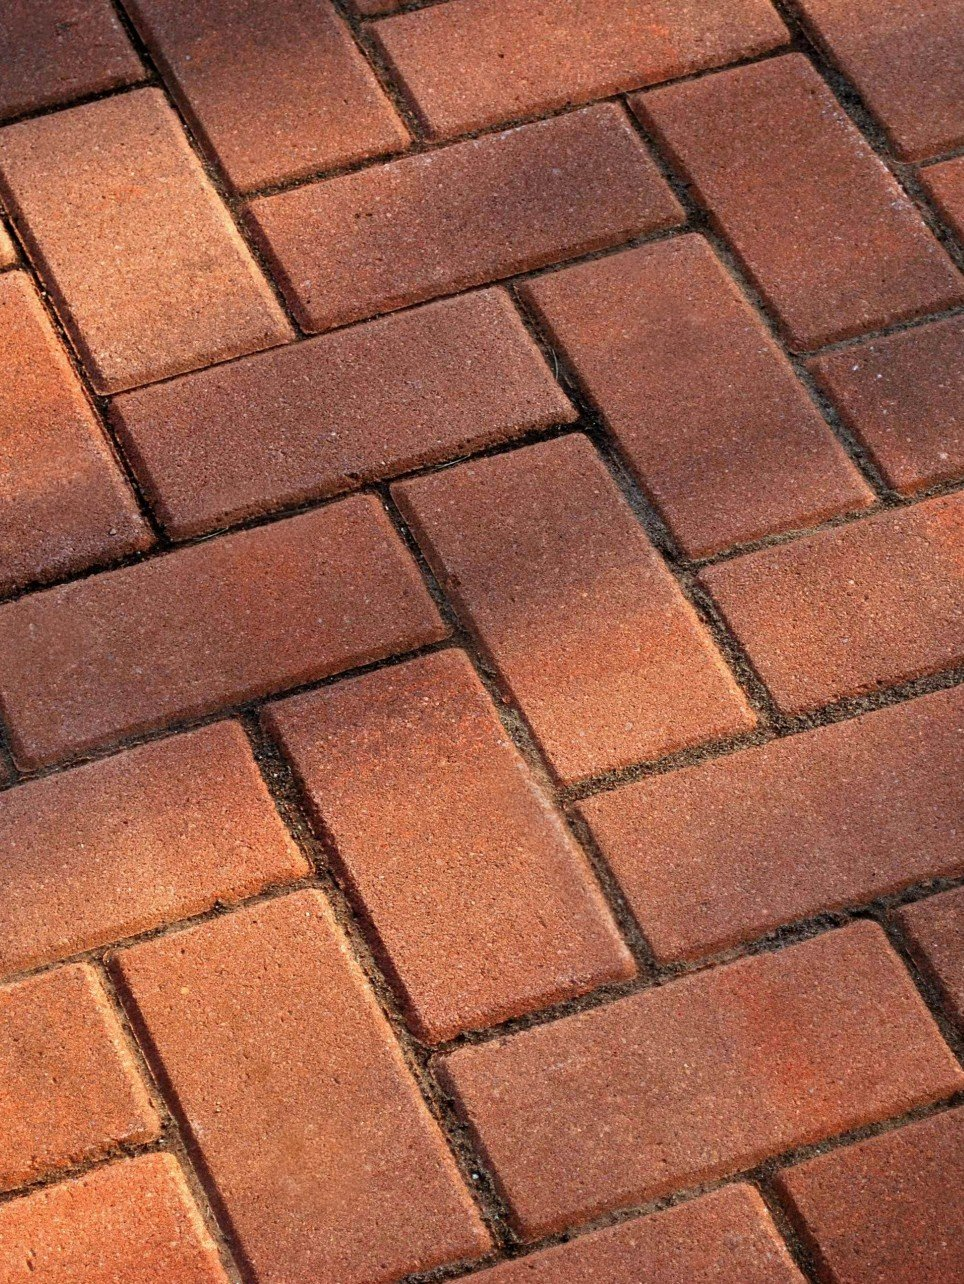 Block Paving Companies Handsworth